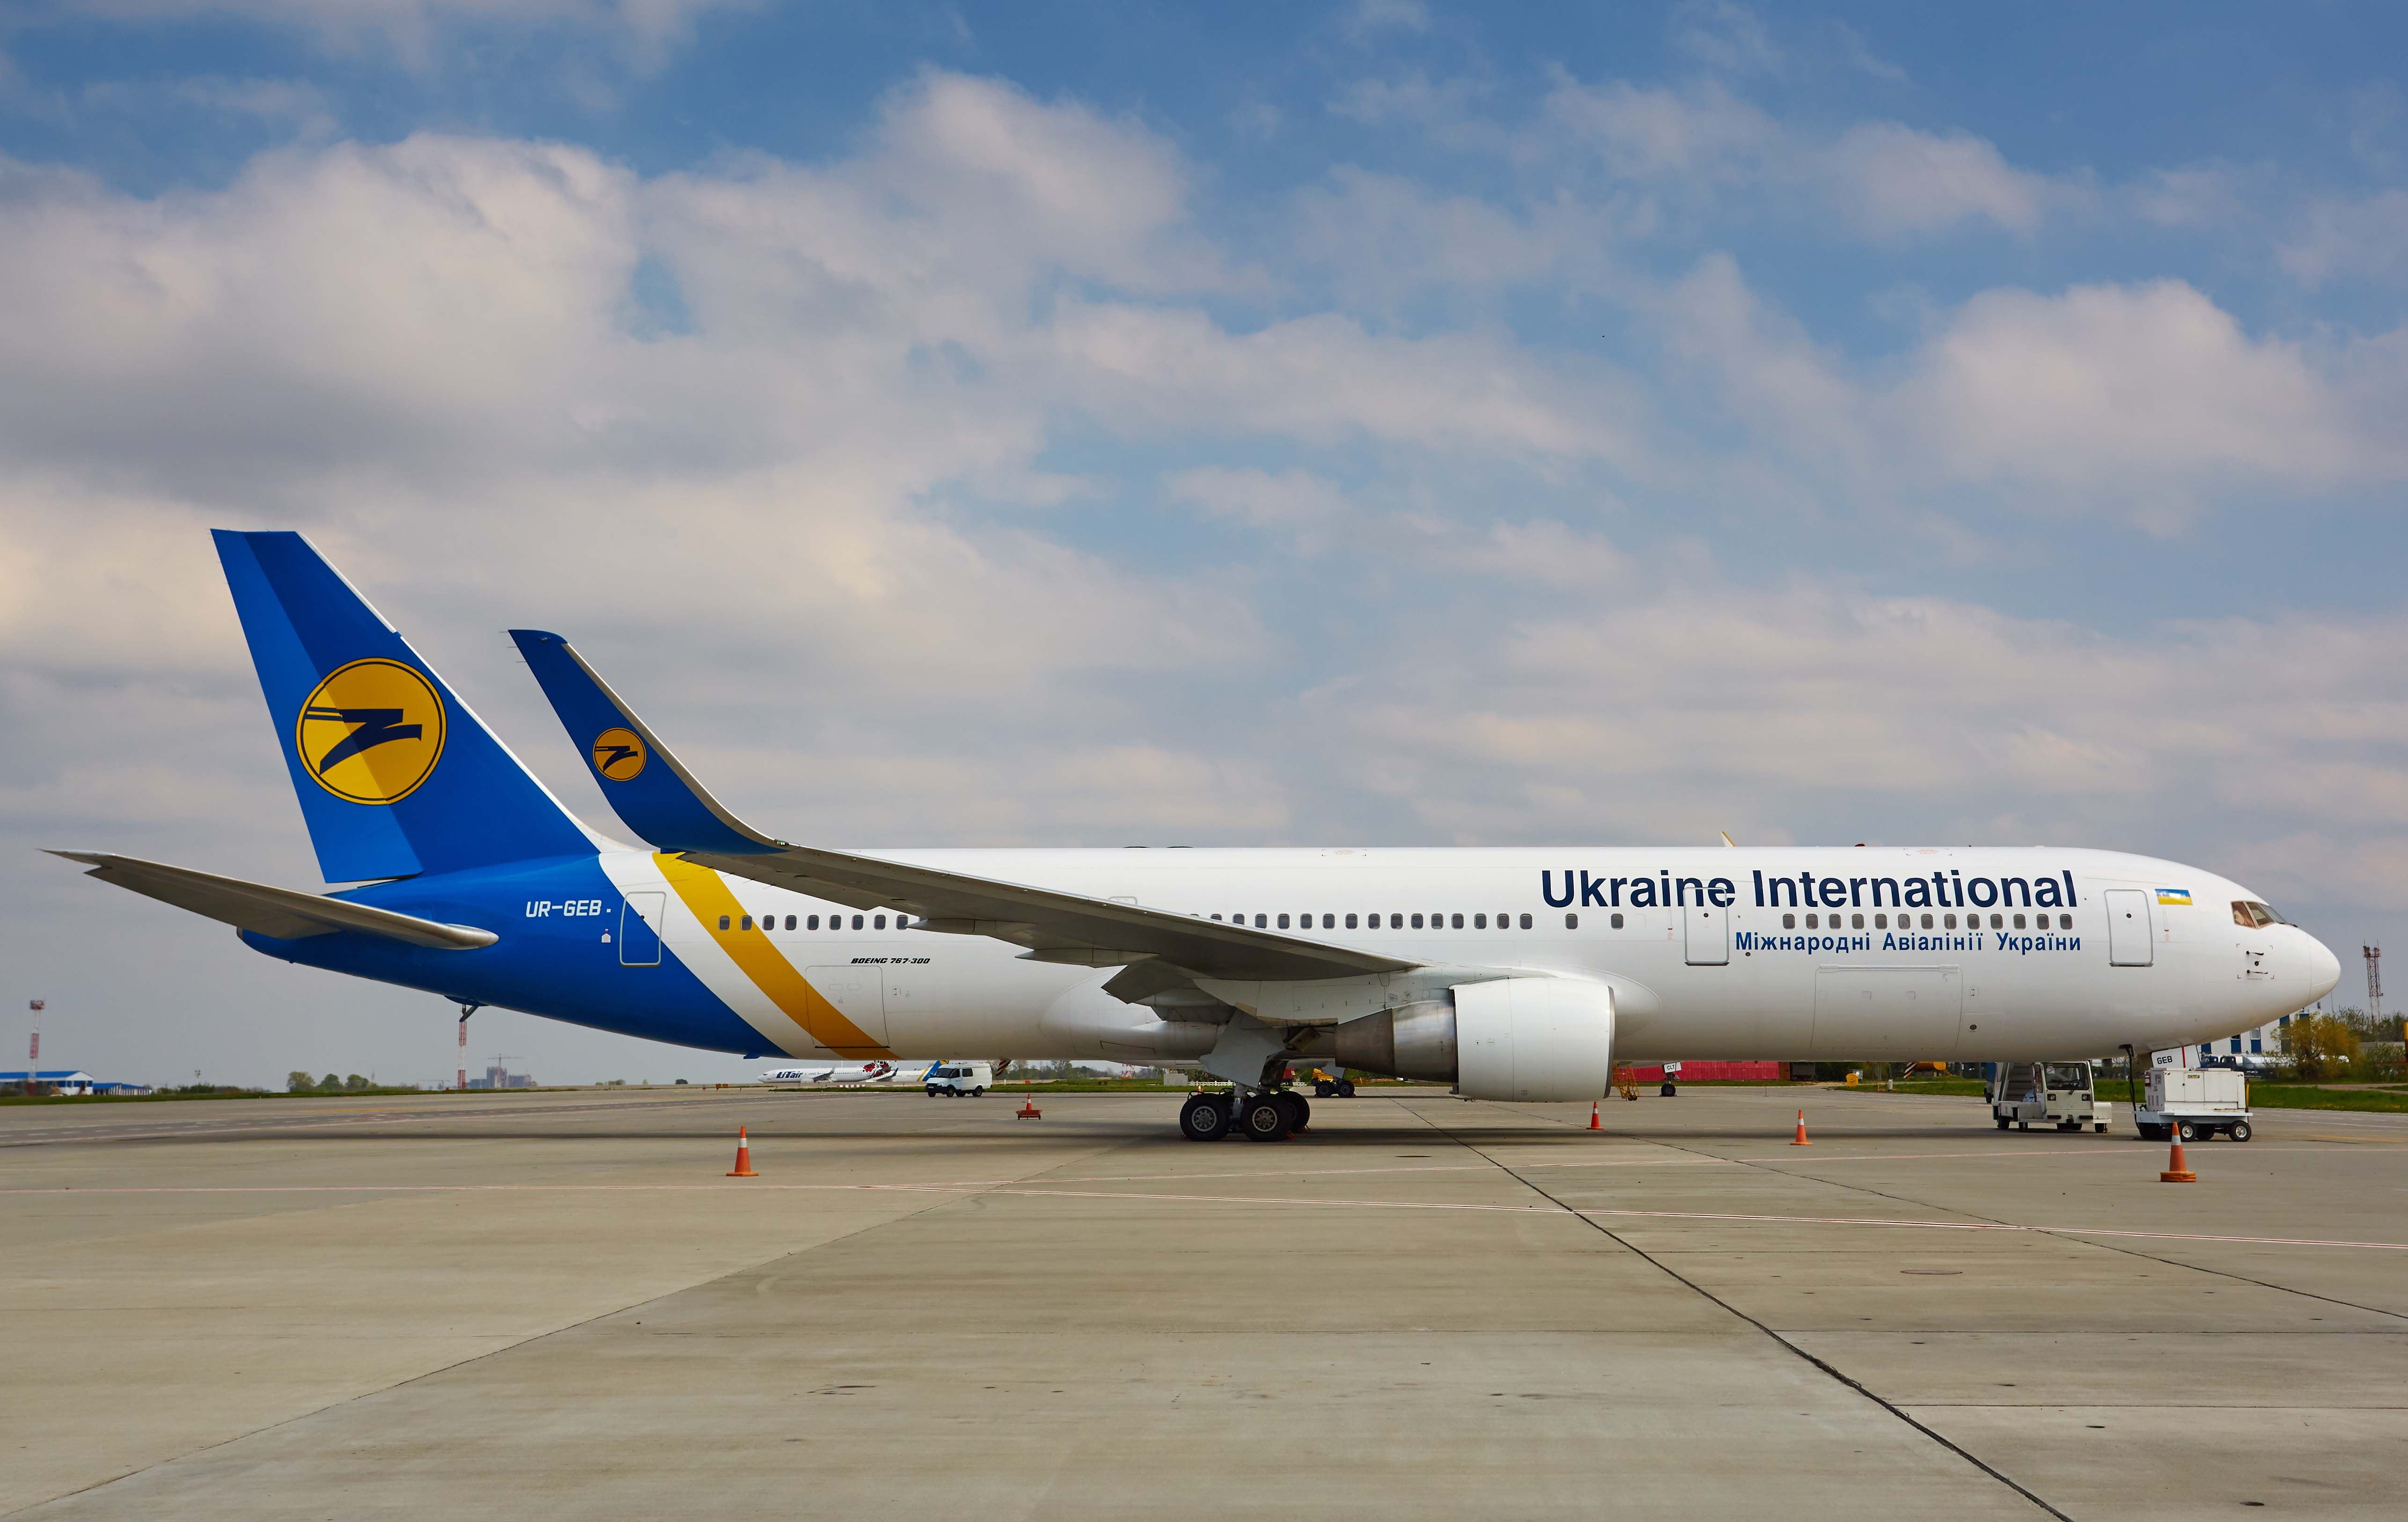 Ukraine airlines launches first service to us air transport news ukraine airlines launches first service to us publicscrutiny Gallery